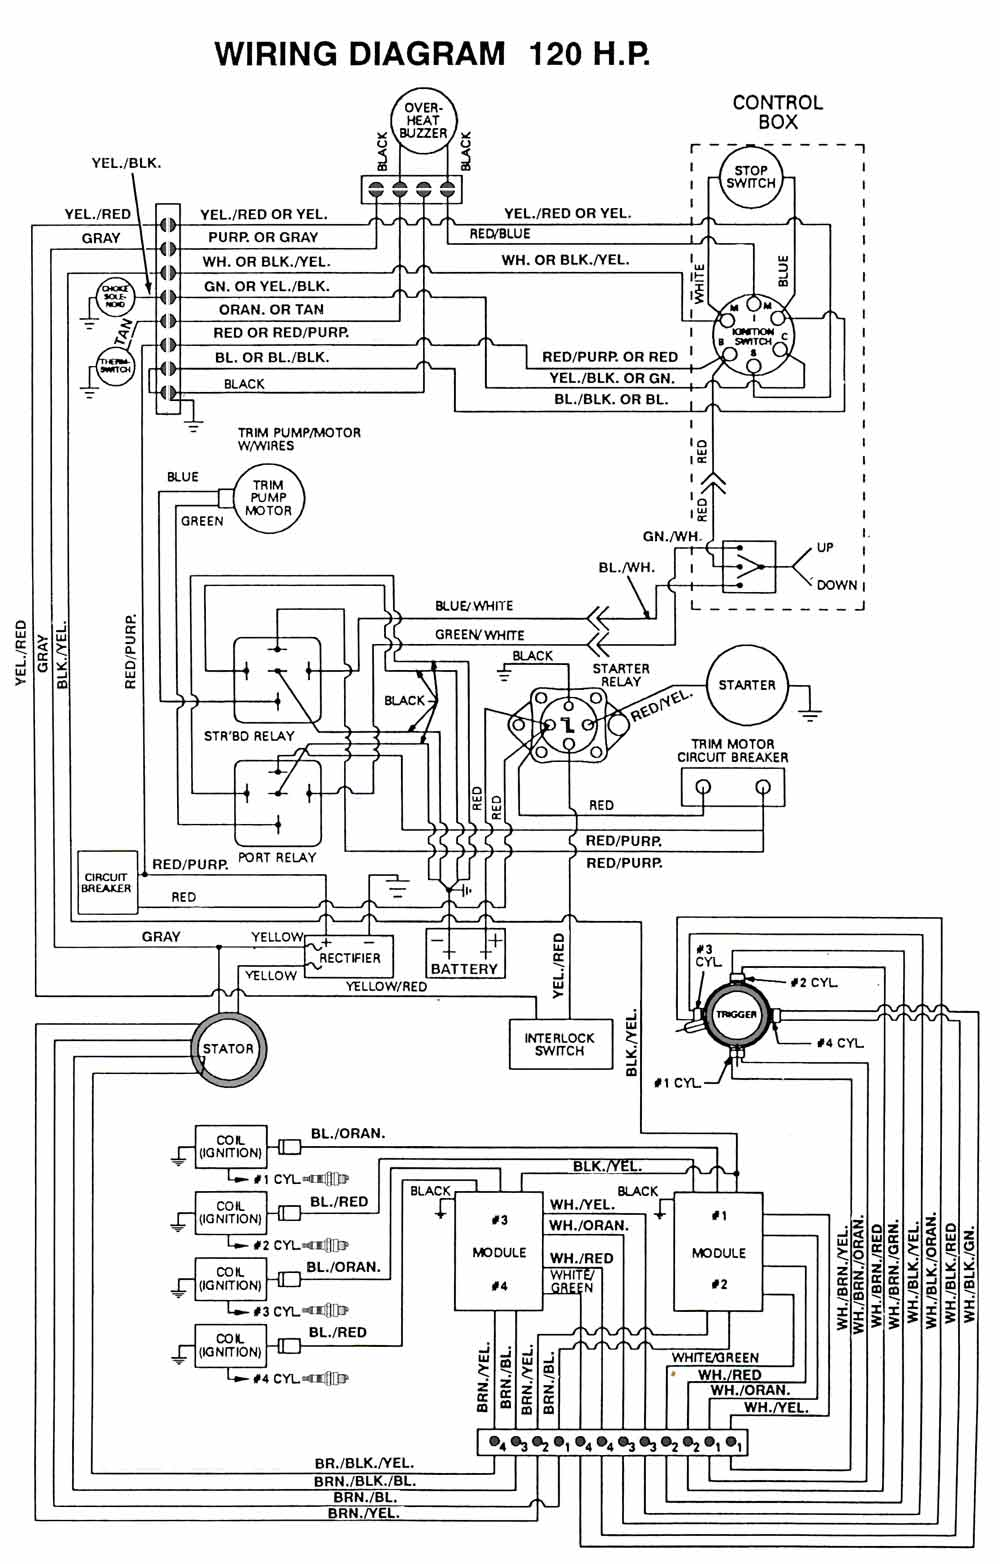 75 mercury optimax wiring diagram simple wiring diagram rh david huggett co  uk